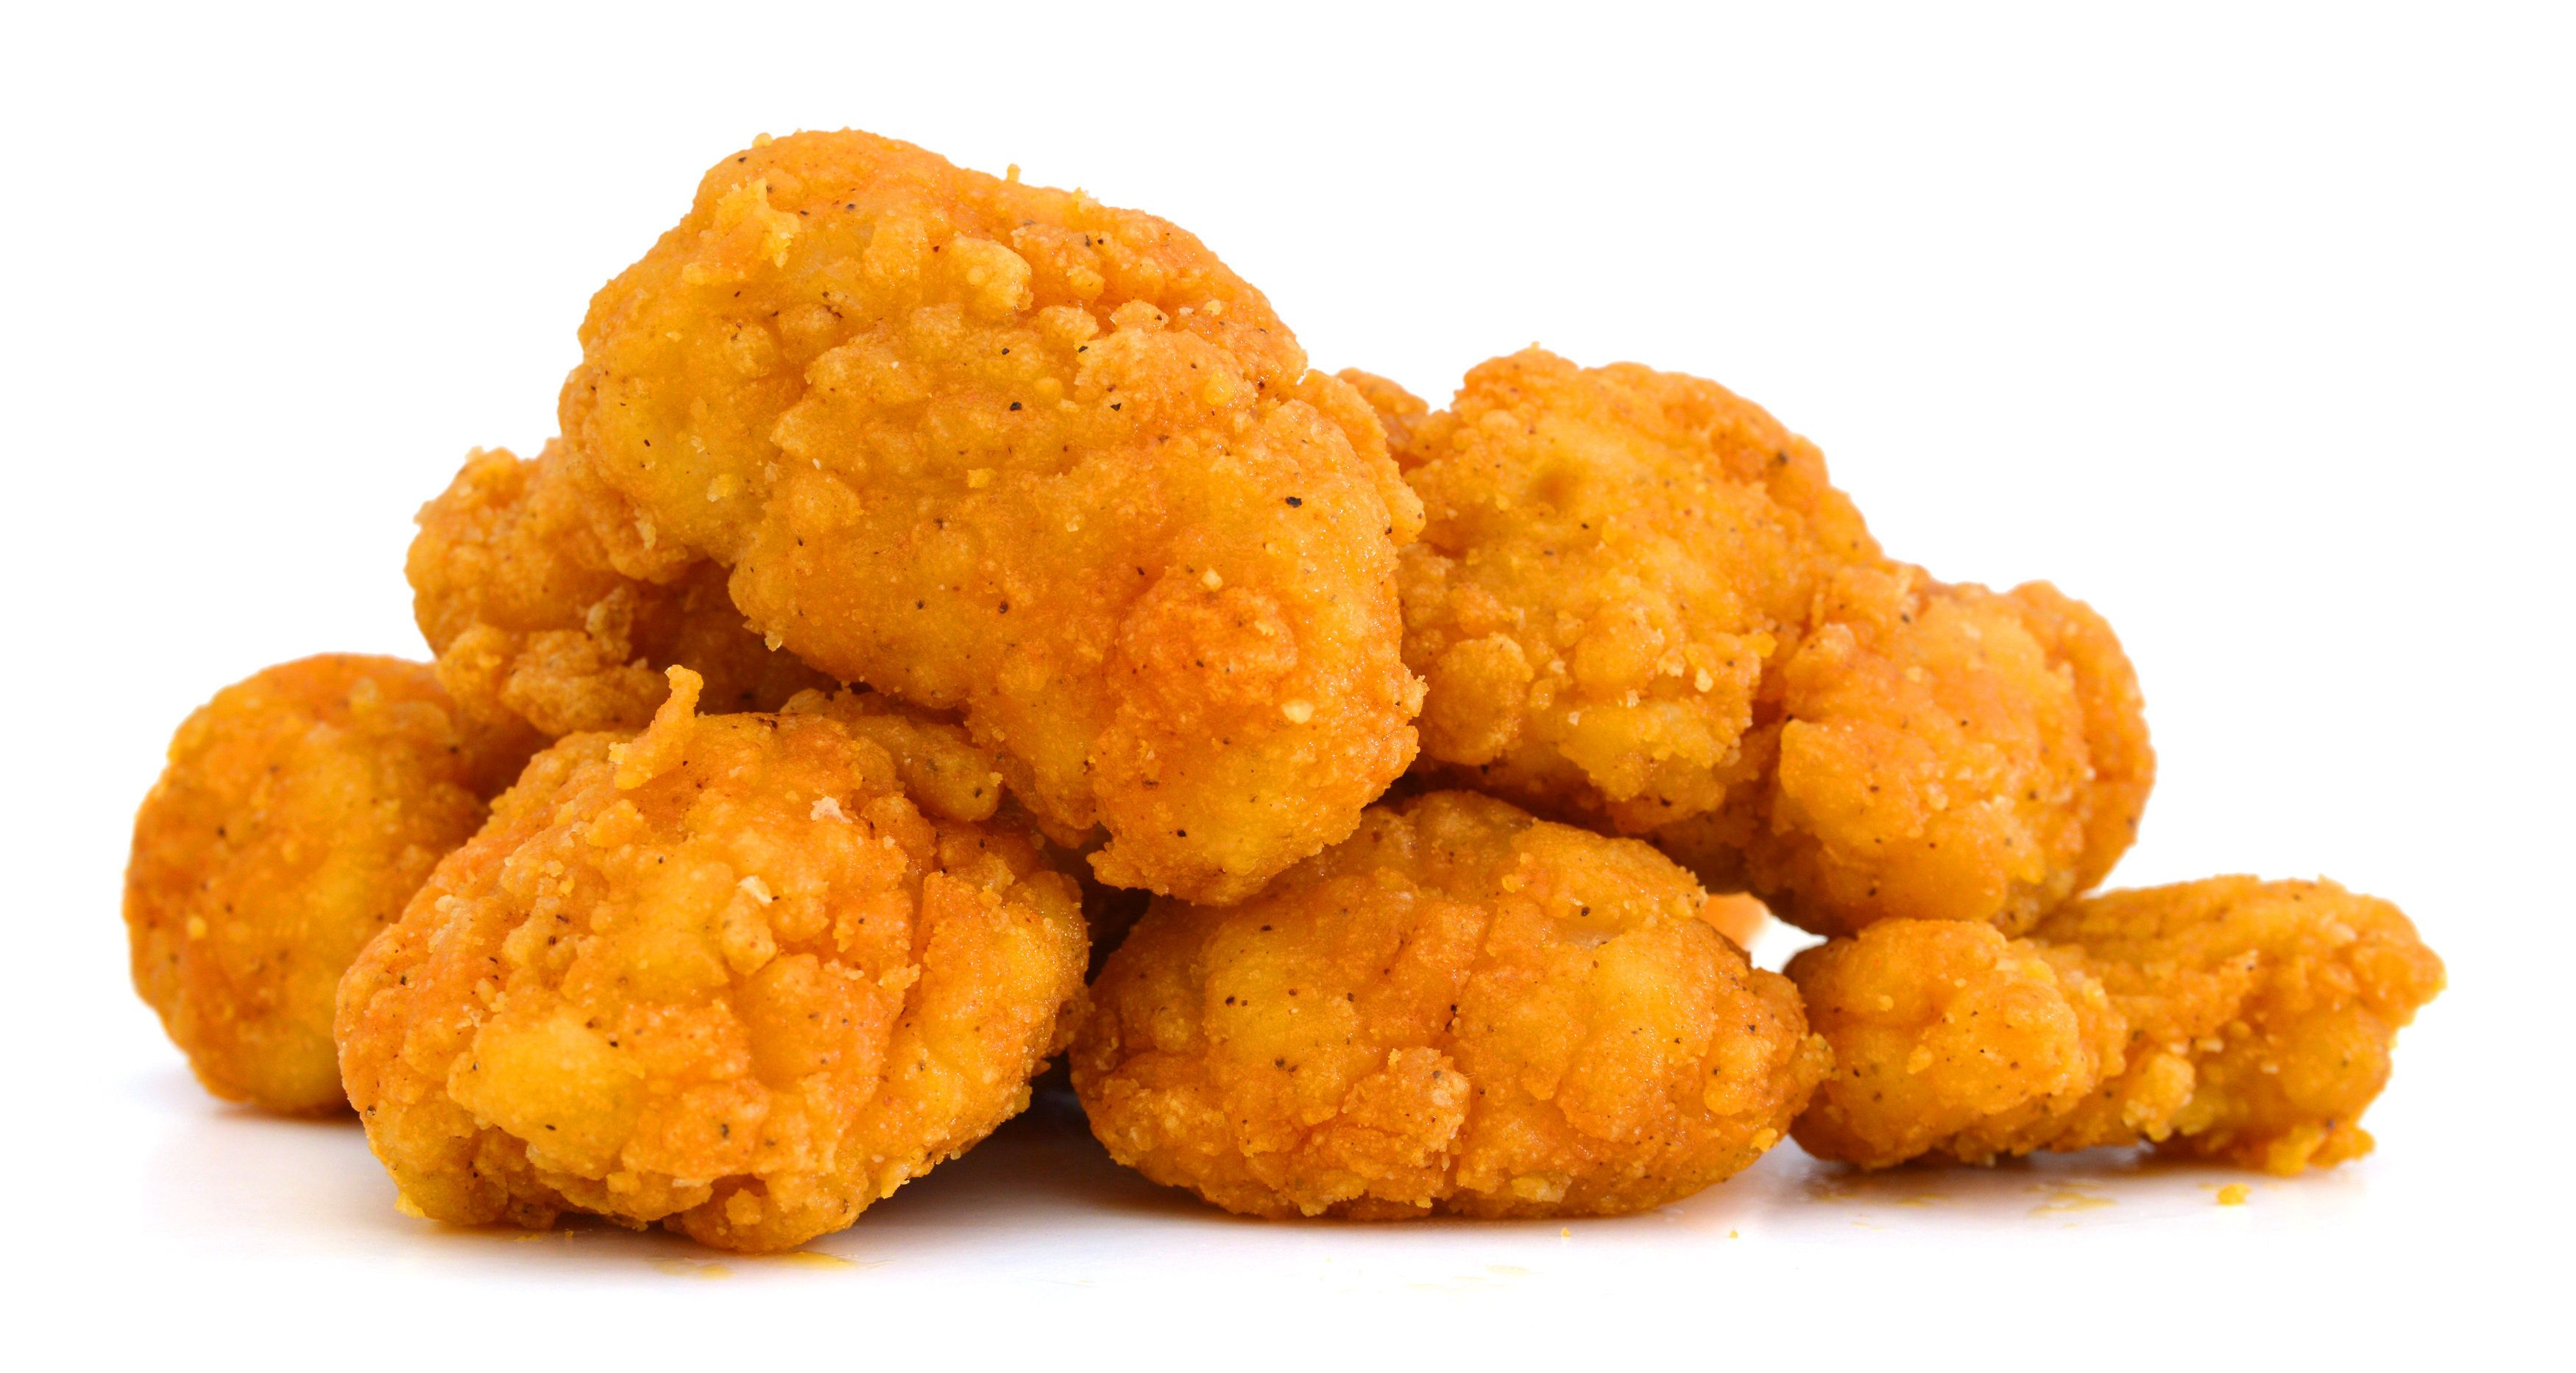 image of the fried popcorn...